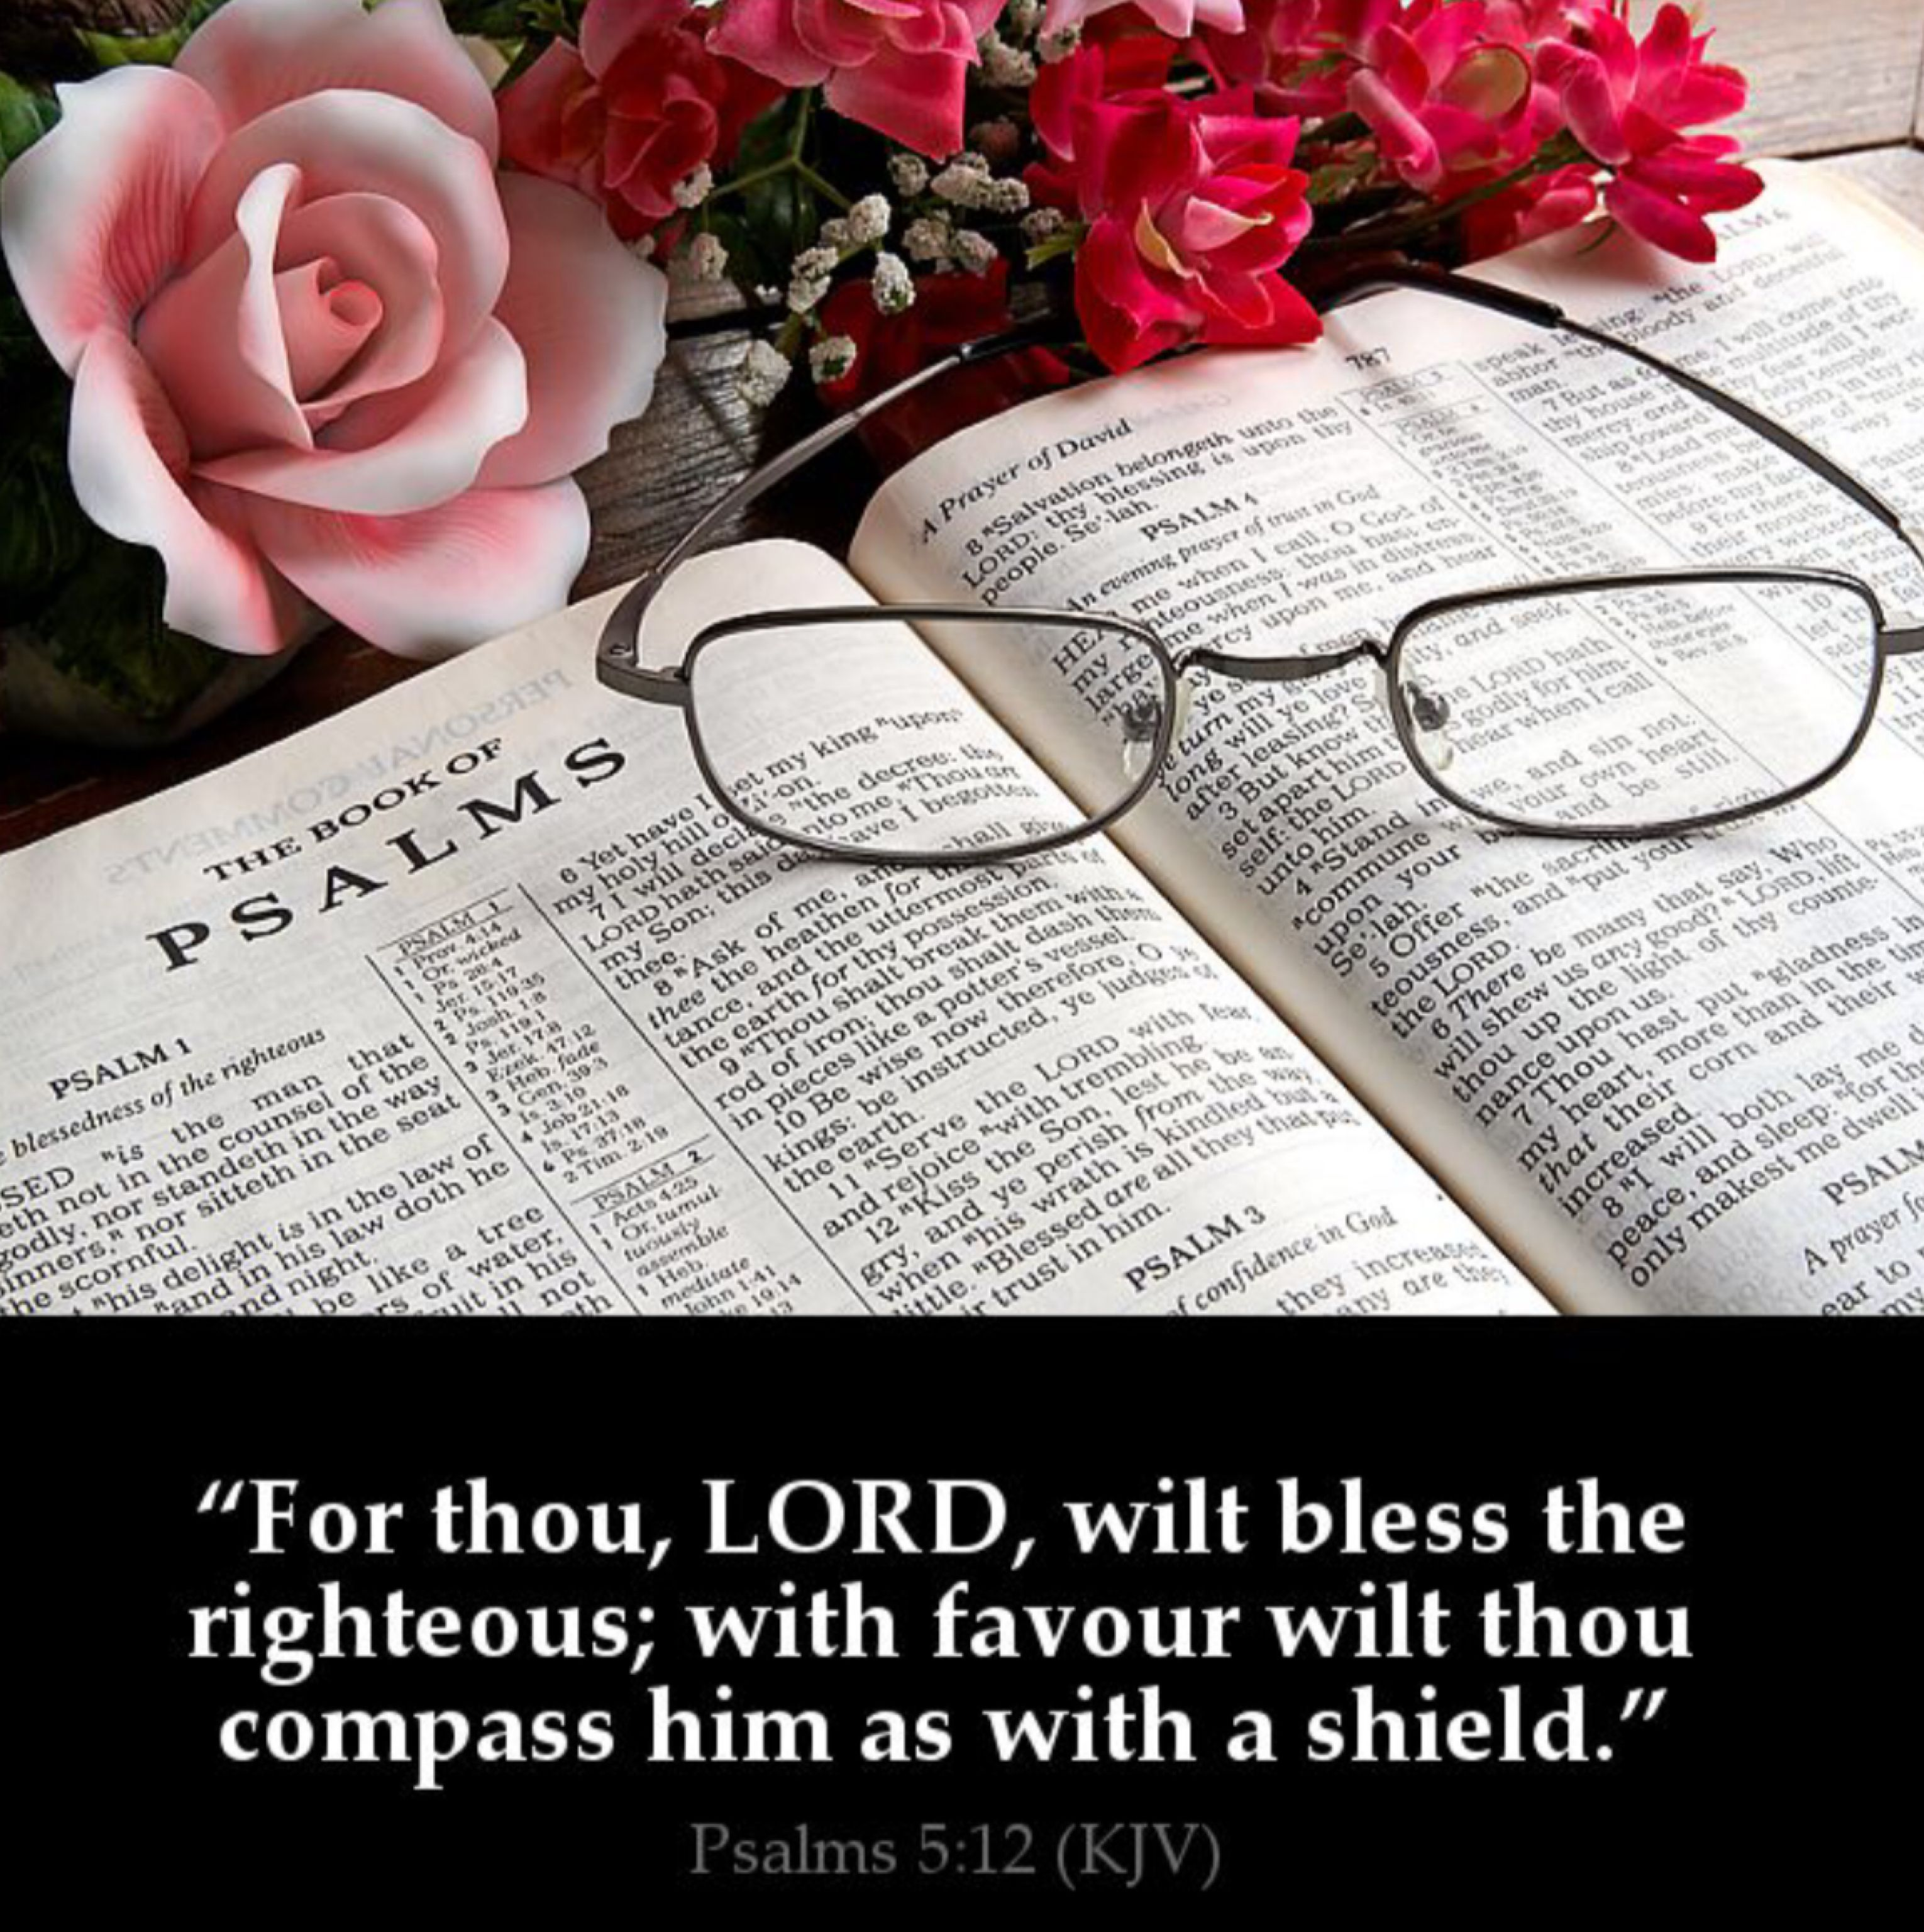 Pin by HAC on Bible Picture Verses | Pinterest | Bible pictures ...